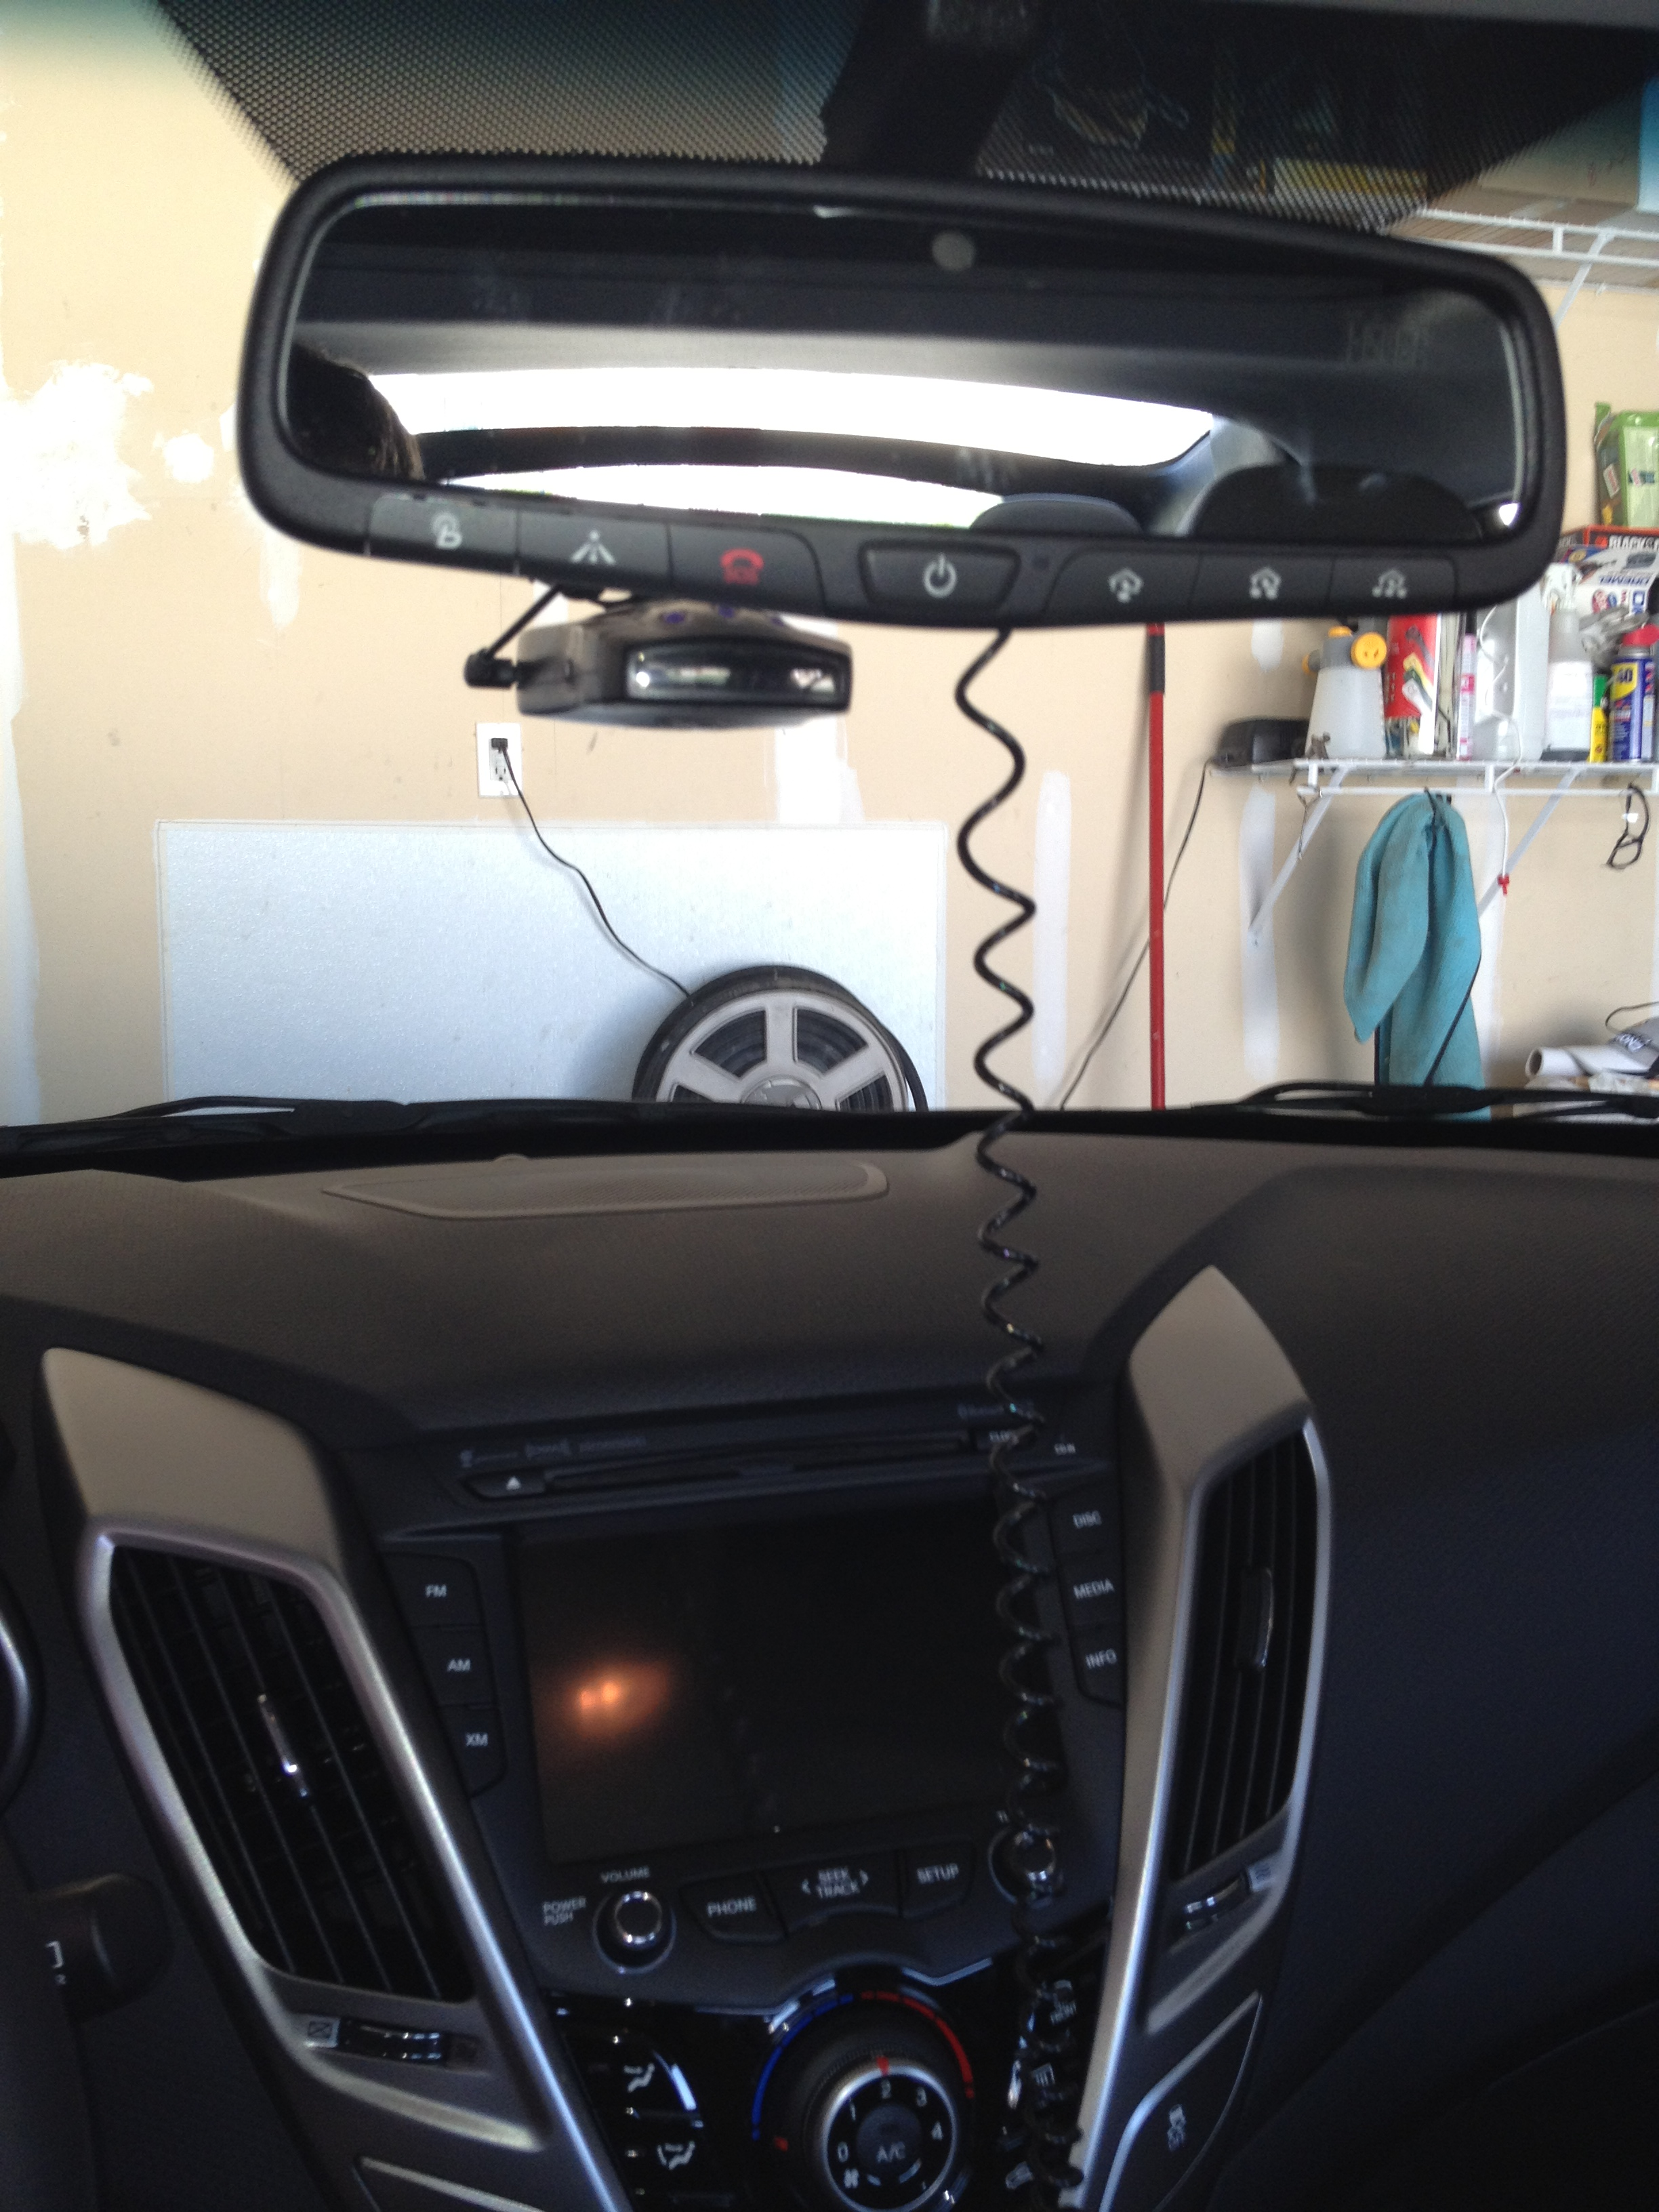 How to install bluelink / homelink / compass / auto-dim rear view mirror from sonata-img_0140.jpg